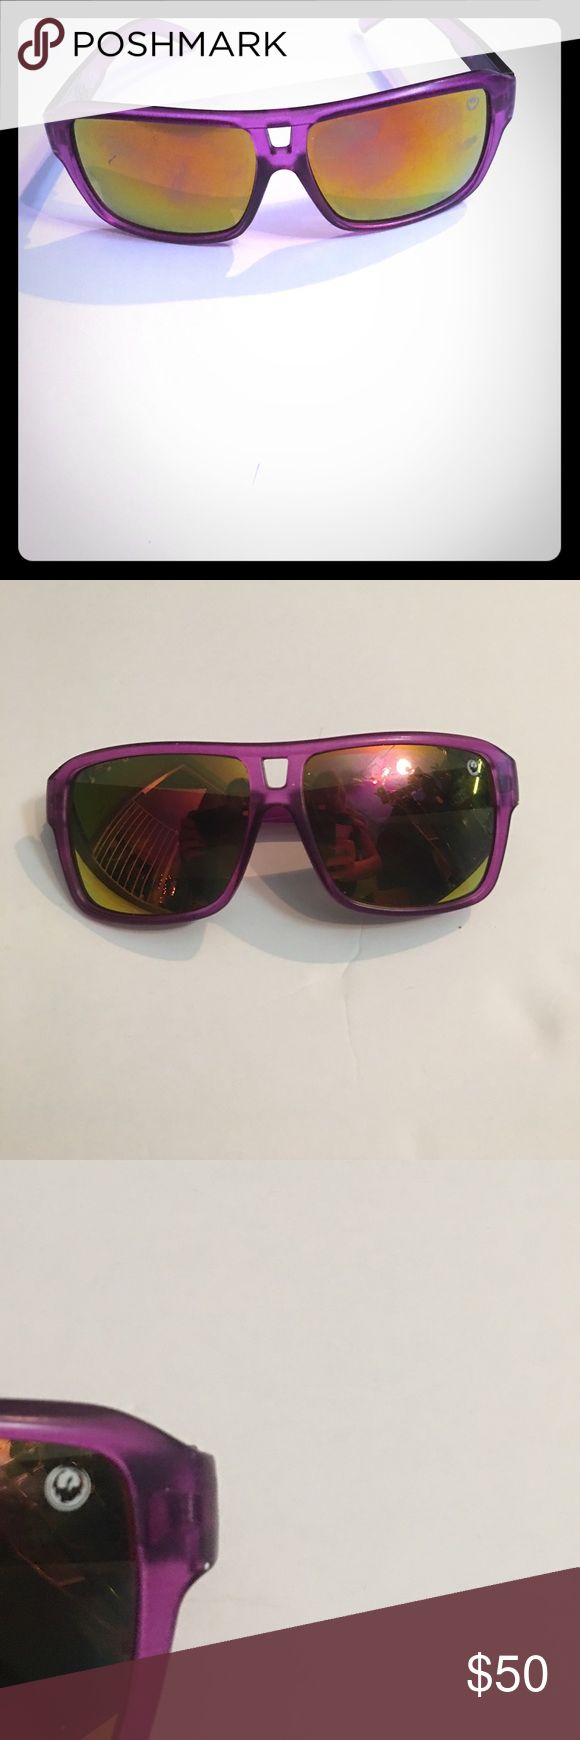 Purple dragon sunglasses unisex Purple dragon unisex sunglasses with yellow gold mirrored lenses. Authentic. Has couple scratches as shown in picture. Dragons the jam dragon Accessories Glasses